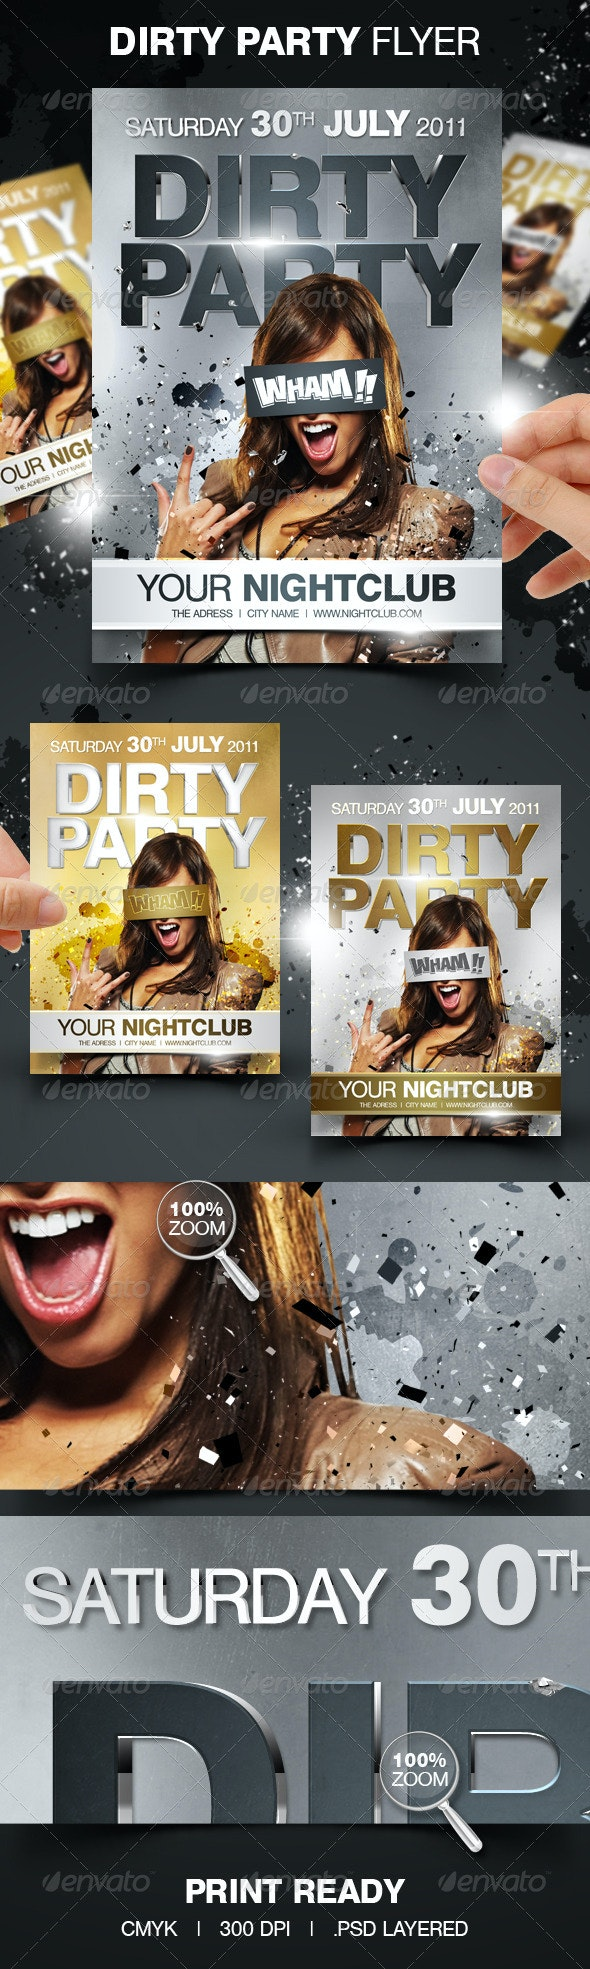 Dirty Party Flyer - Clubs & Parties Events